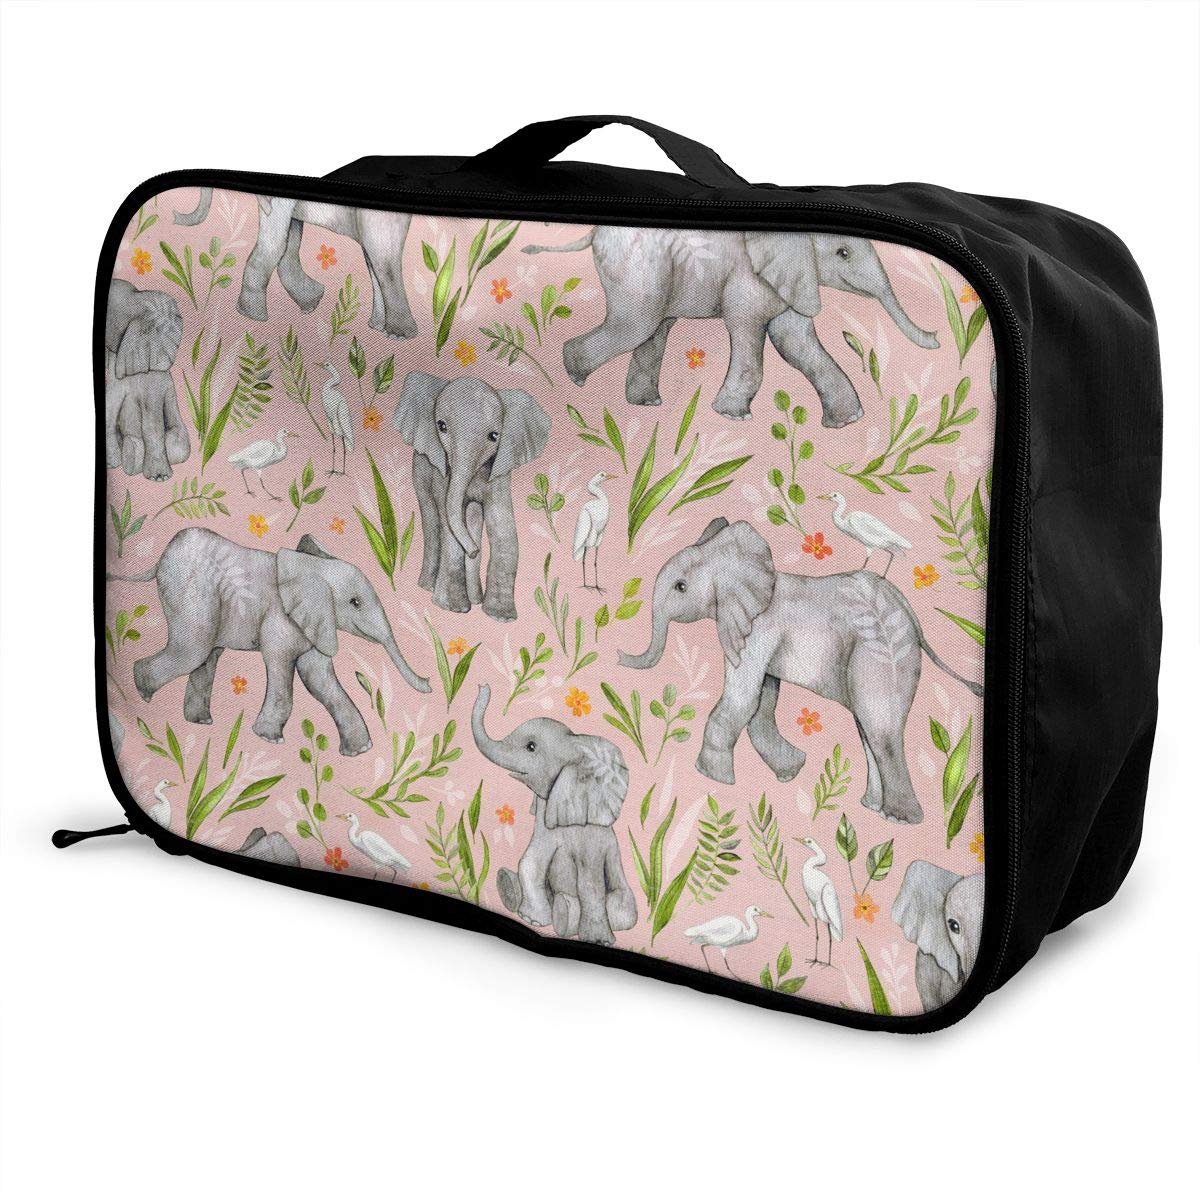 ADGAI Baby Elephants and Egrets Canvas Travel Weekender Bag,Fashion Custom Lightweight Large Capacity Portable Luggage Bag,Suitcase Trolley Bag